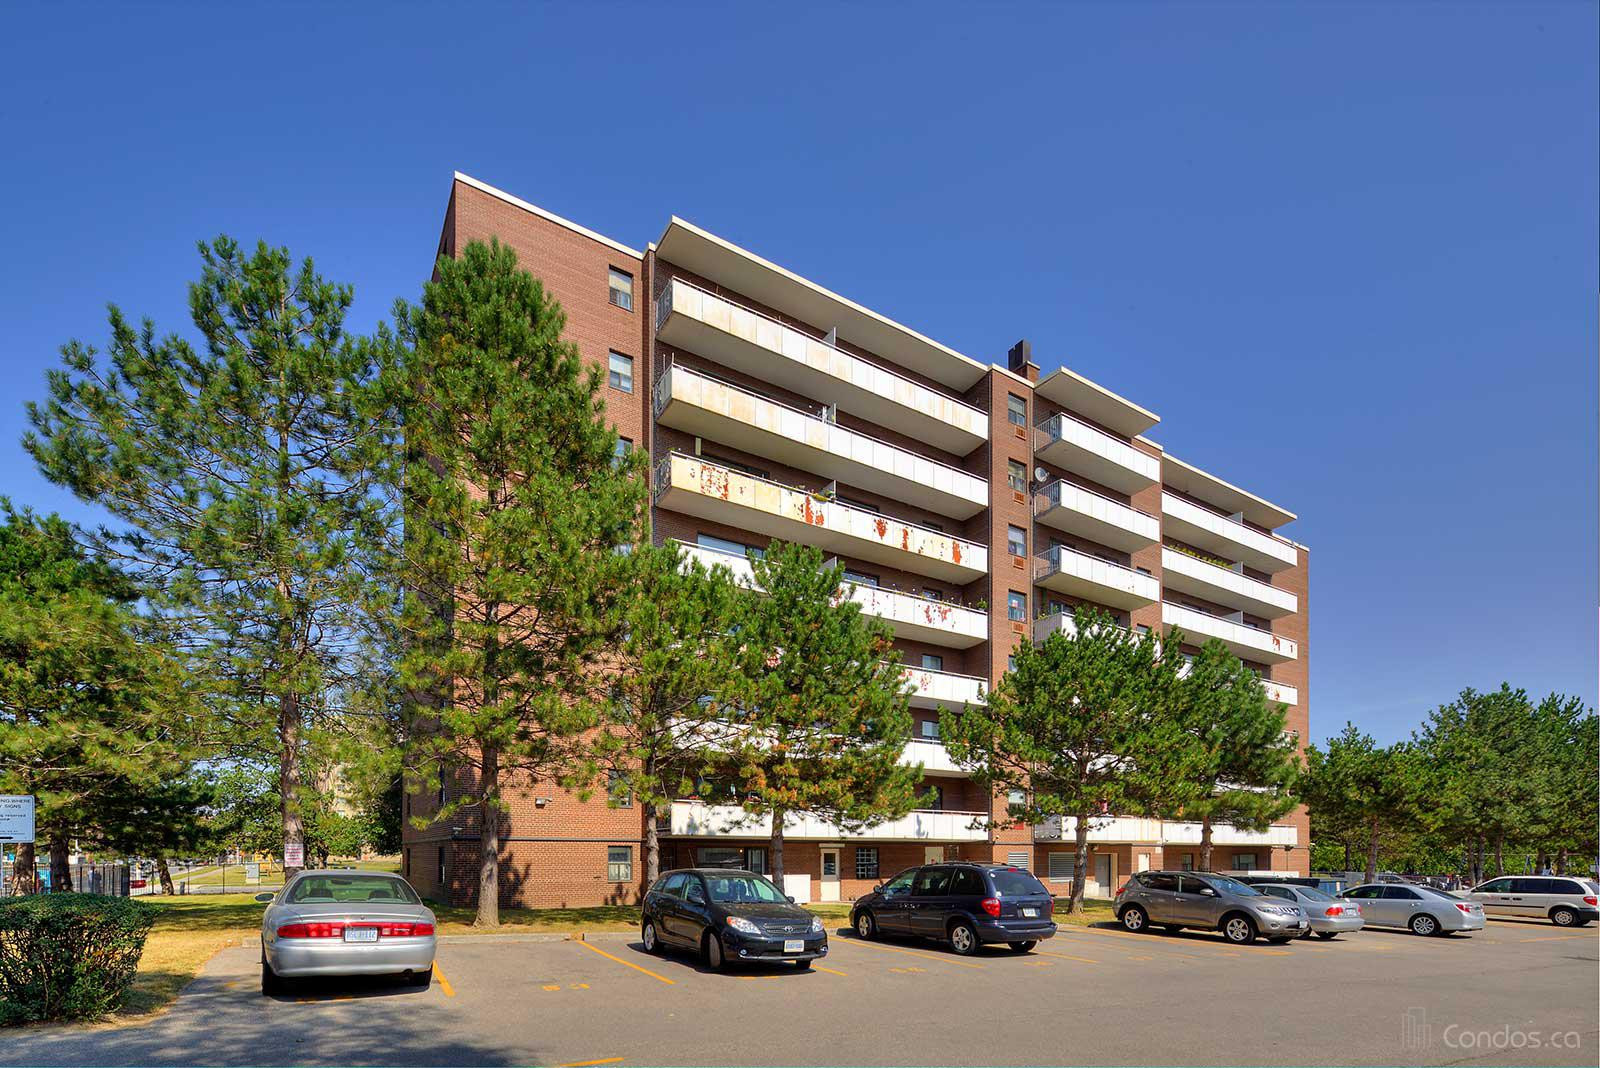 Bloorgate Towers at 3320 Fieldgate Dr, Mississauga 0